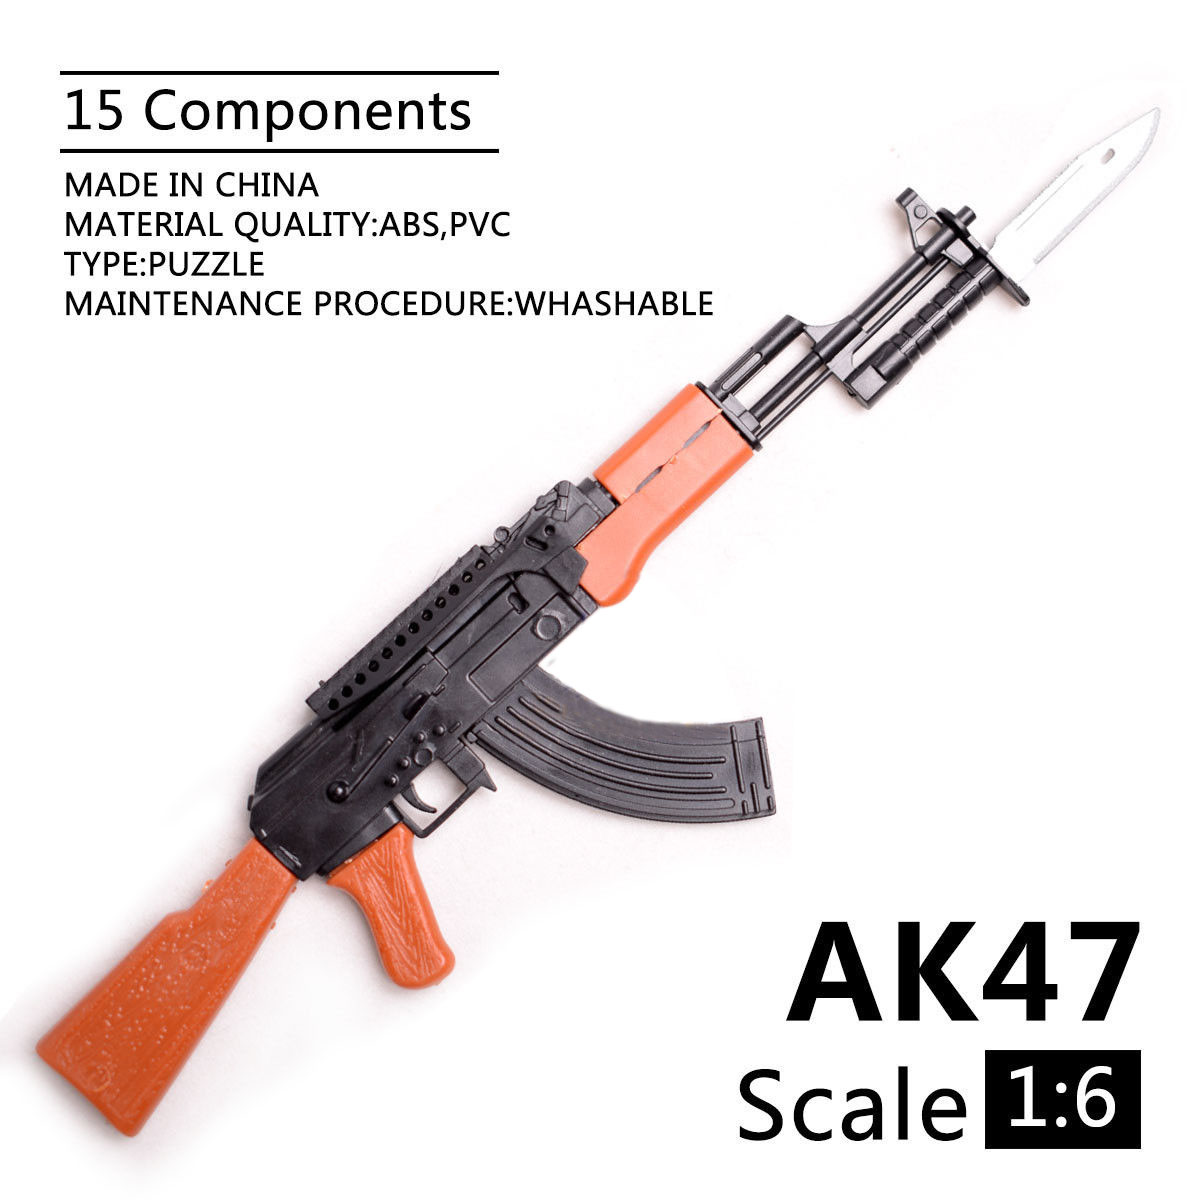 1/6 Scale AK47 Rifle Toy Gun Model Assembly Puzzles Building Bricks Gun Soldier Weapon For Action Figures